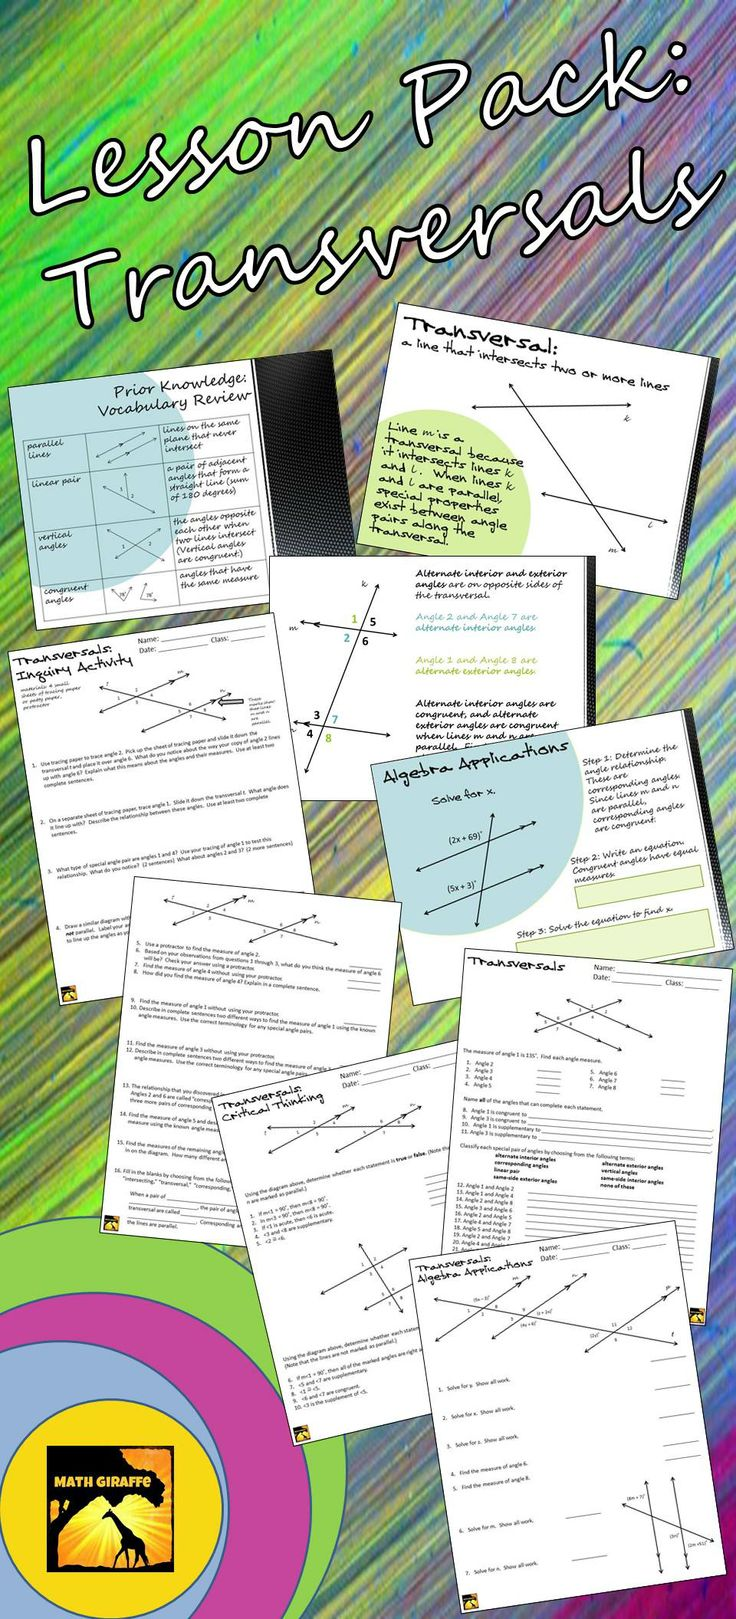 Full lesson pack: inquiry-based introduction activity, presentation, printables, and algebra applications included (corresponding angles, alternate interior and exterior angles, etc.)